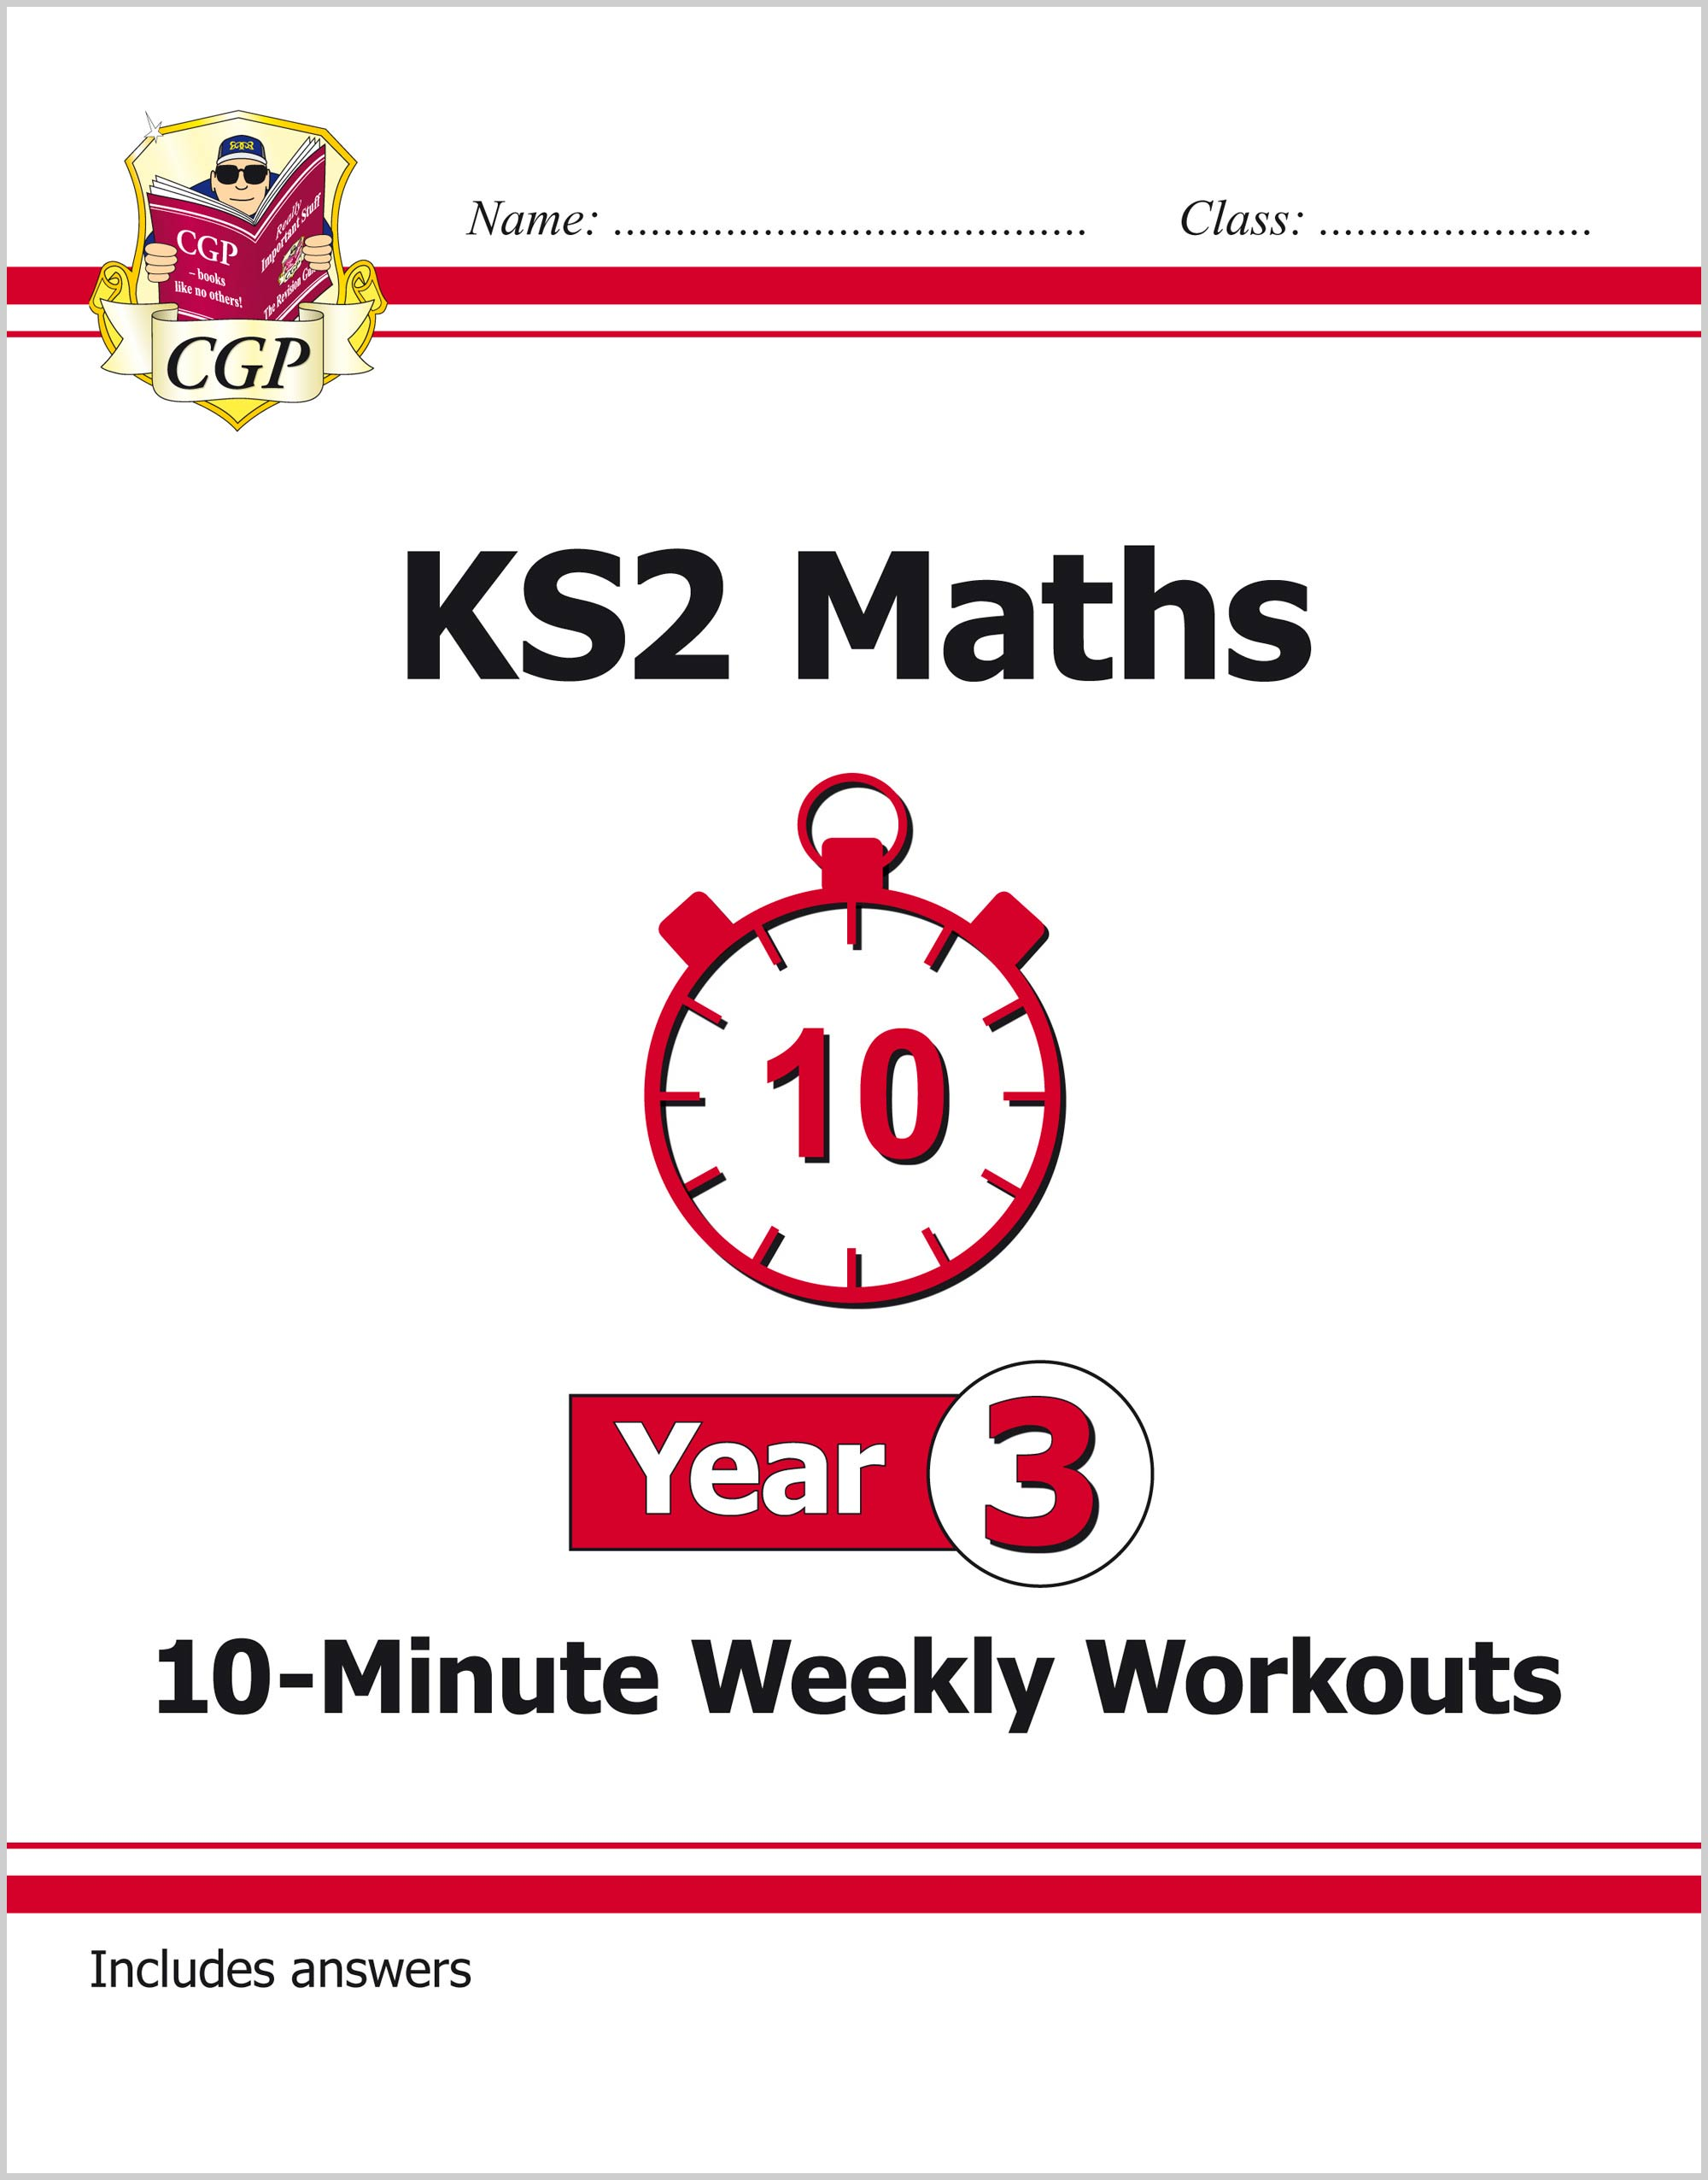 M3XW21 - New KS2 Maths 10-Minute Weekly Workouts - Year 3